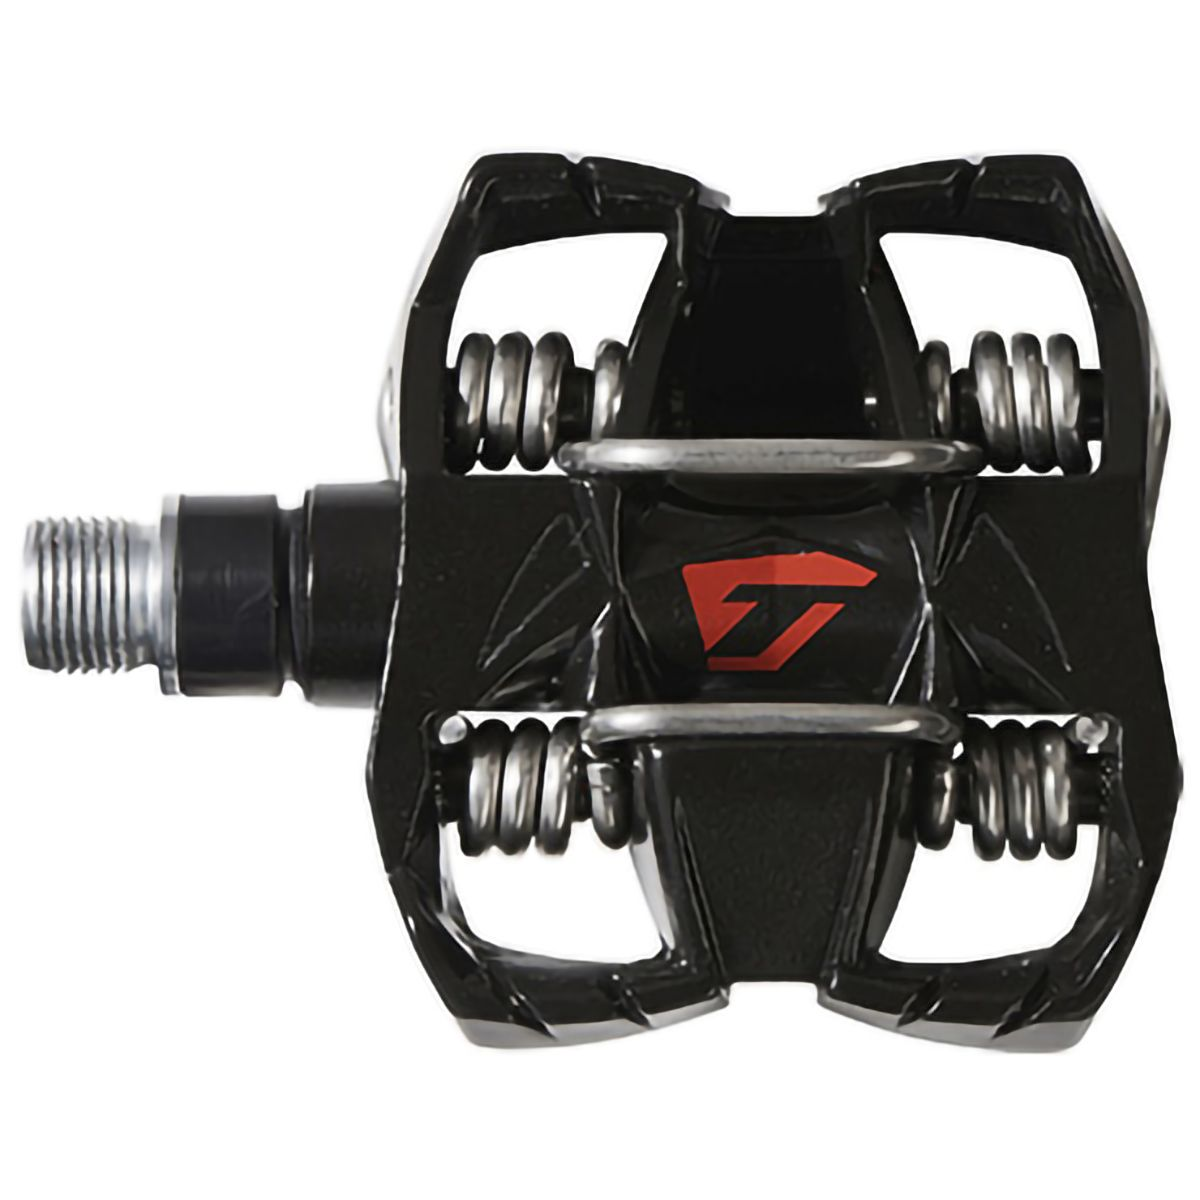 Time Atac DH4 Downhill MTB Pedals - 2018